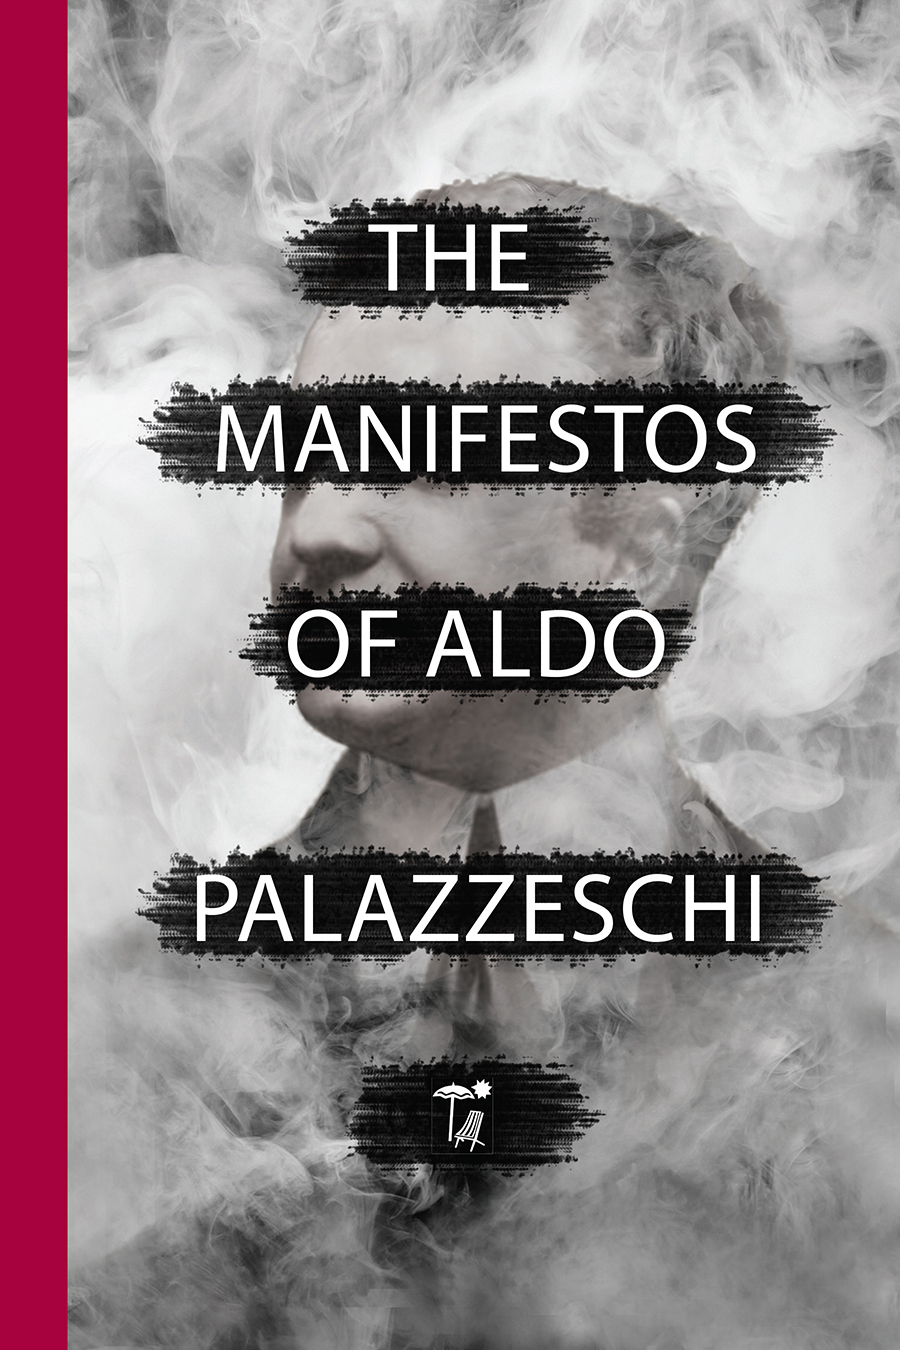 The Manifestos of Aldo Palazzeschi